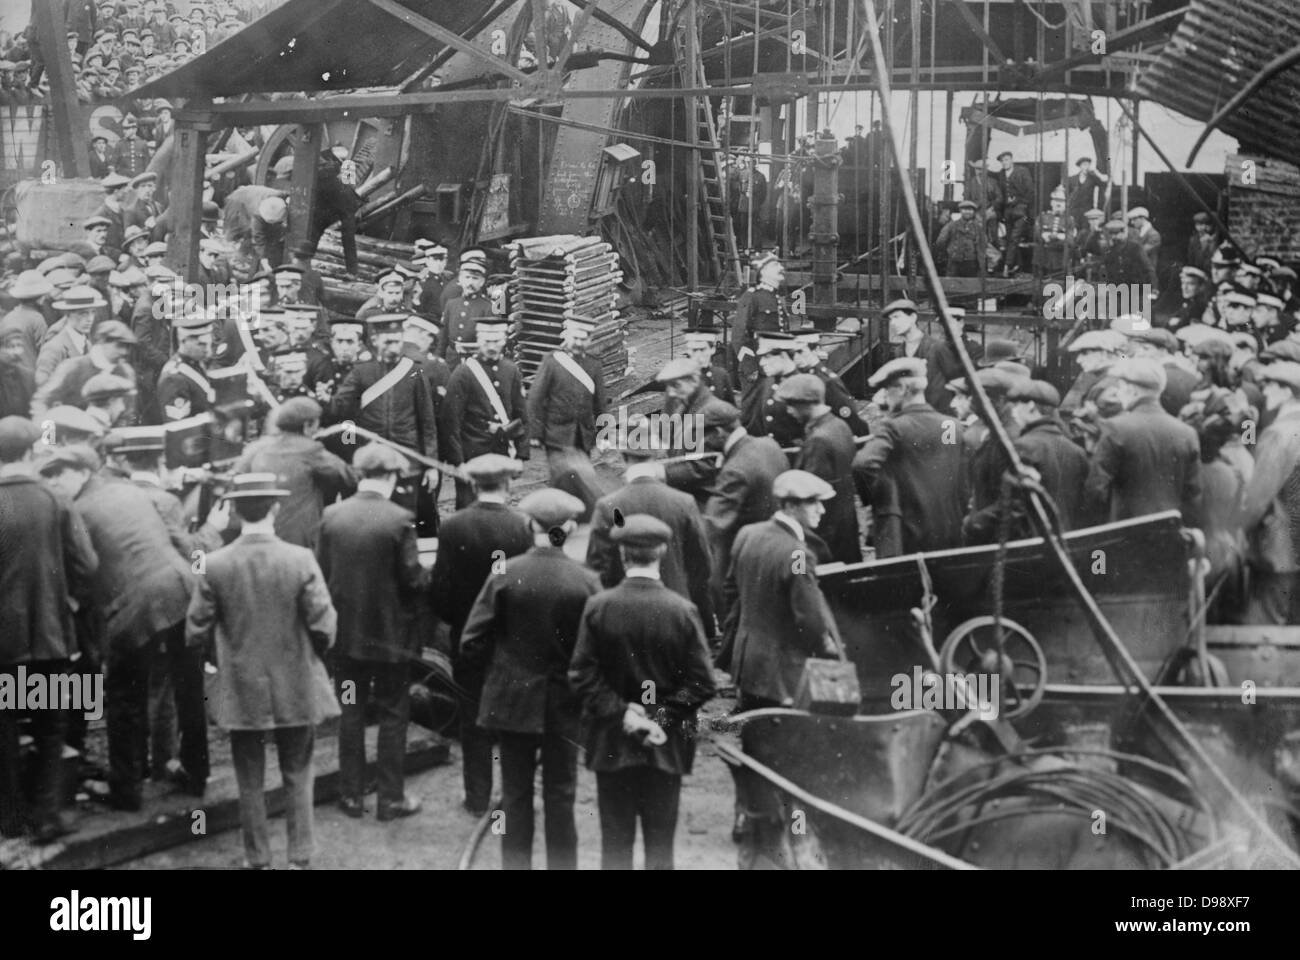 Cardiff mine disaster [1913 Oct.] Photo shows the Sengenydd Colliery Disaster, Sengenydd, Wales. 439 men died in - Stock Image